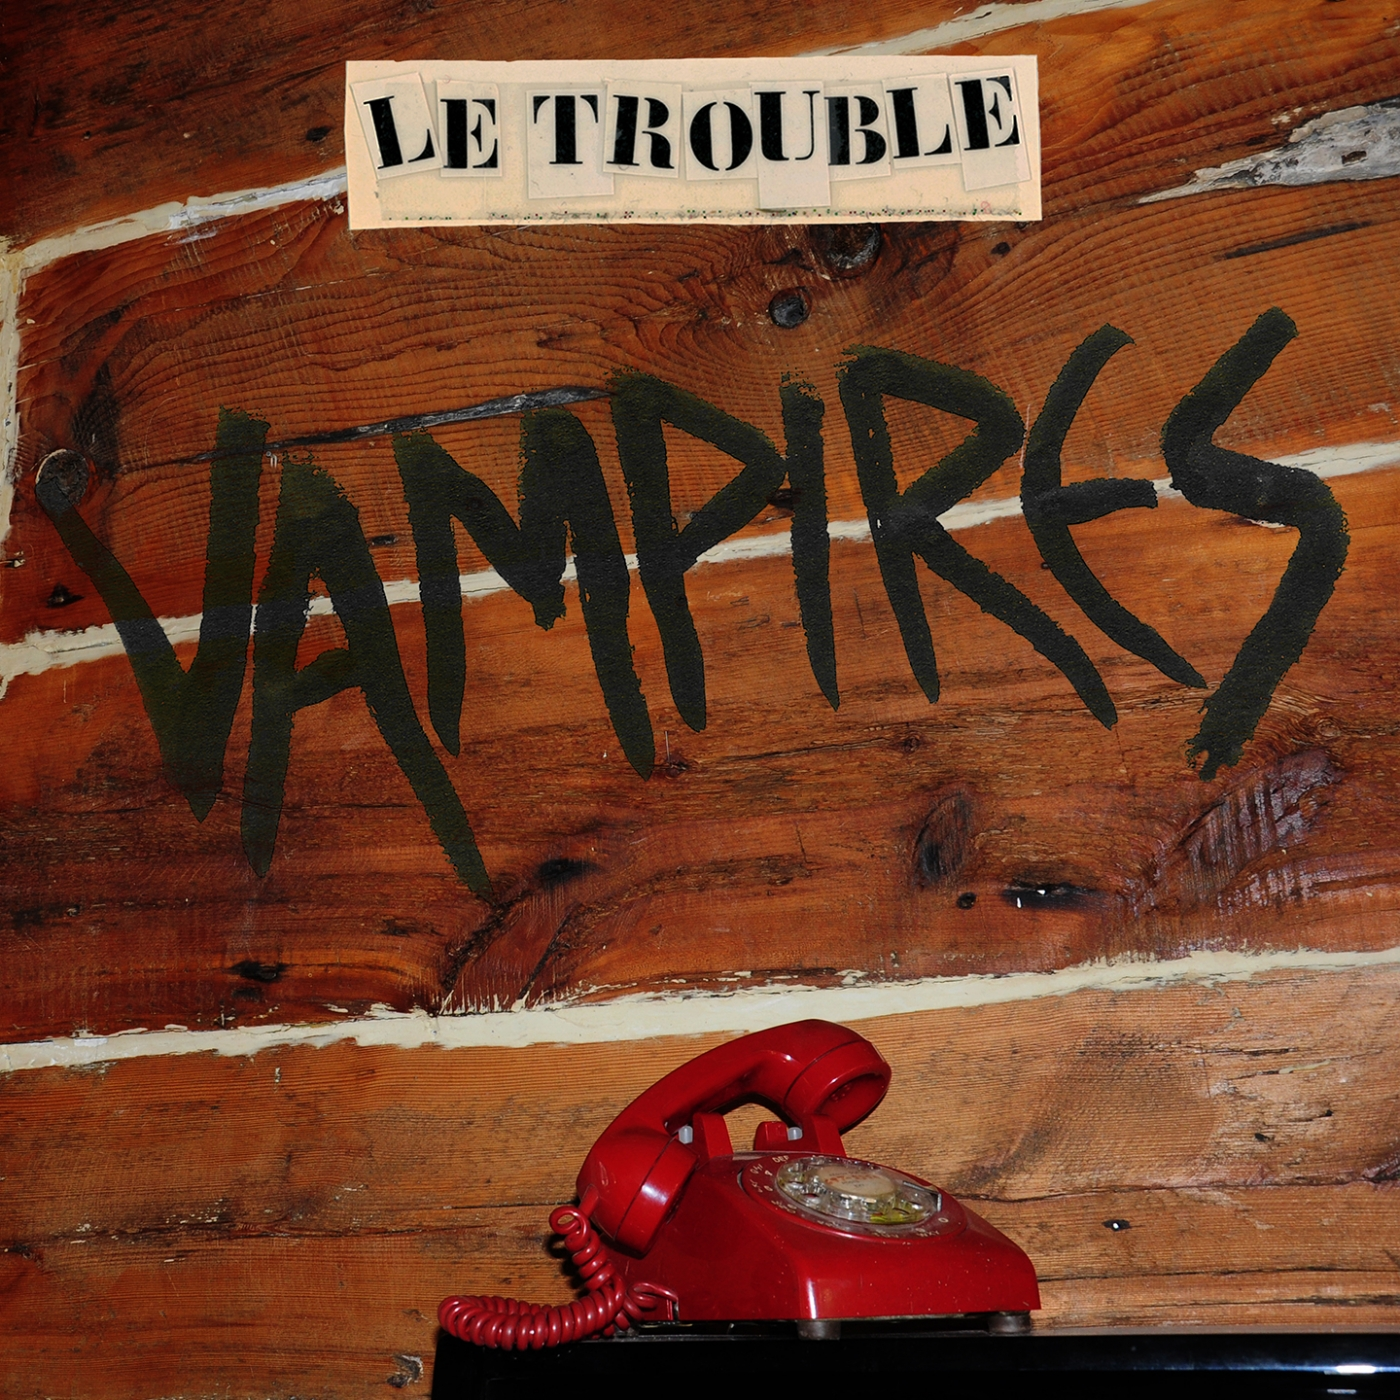 Le Trouble - Vampires